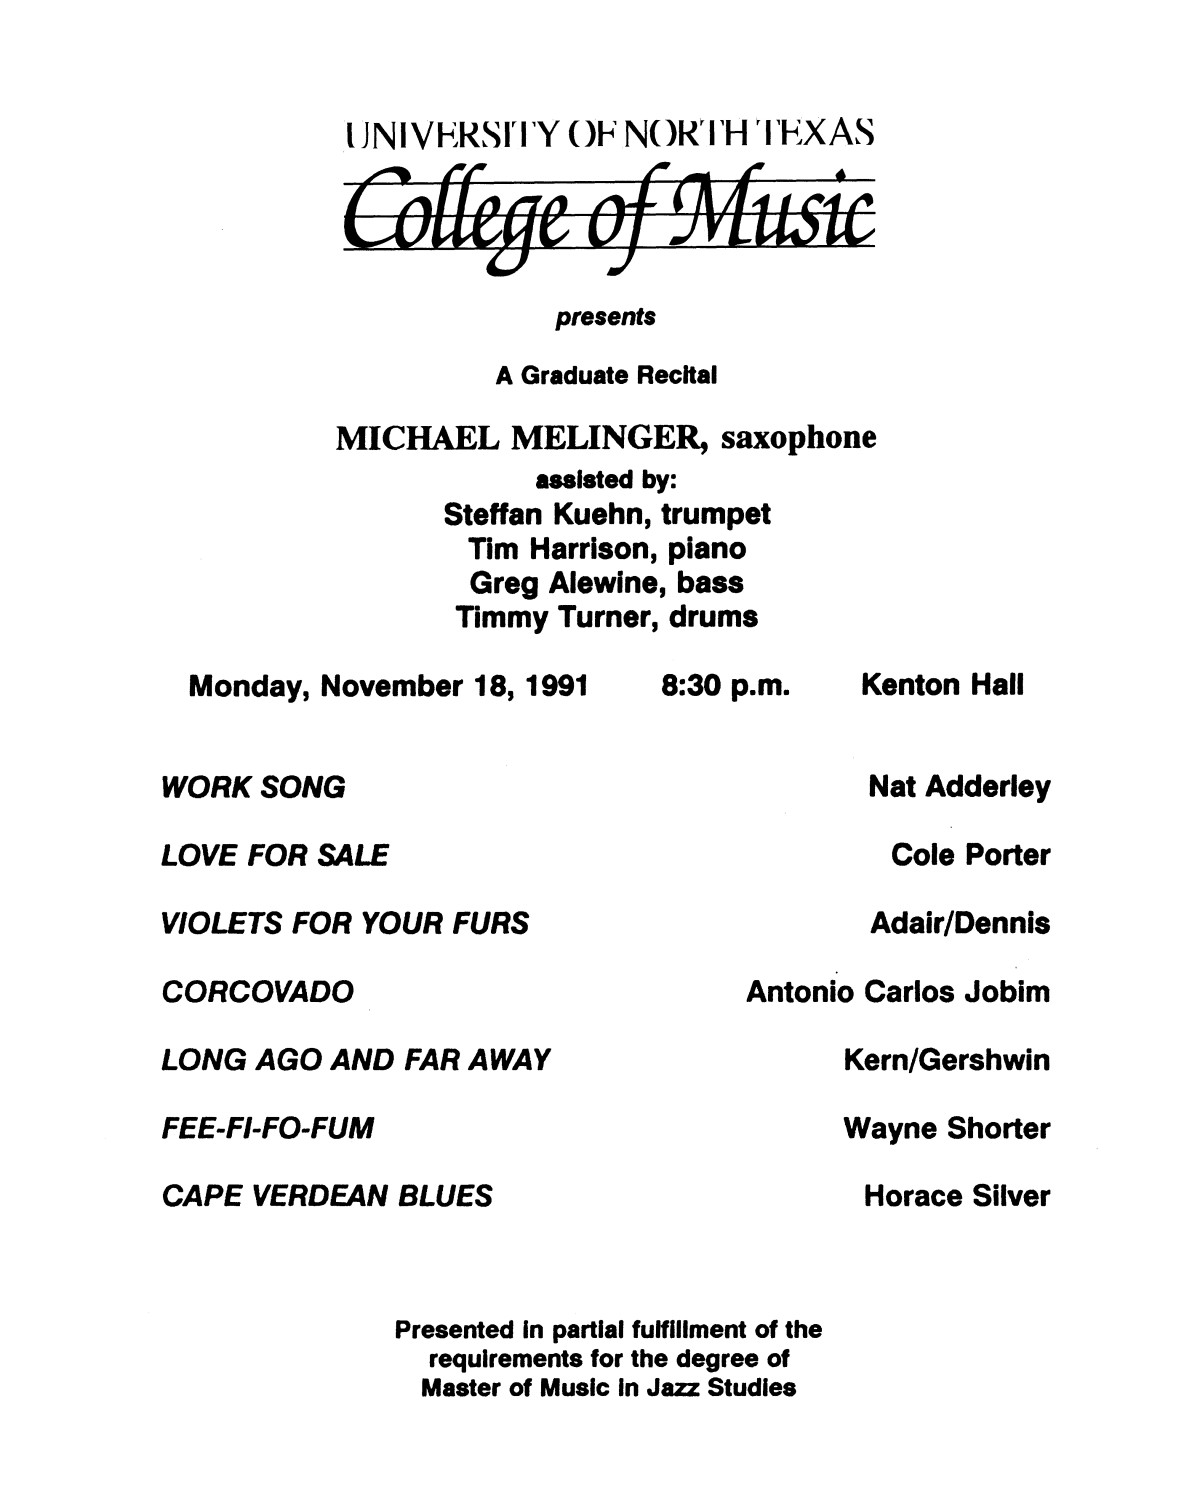 College of Music program book 1991-1992 Student Performances Vol. 2                                                                                                      [Sequence #]: 65 of 310